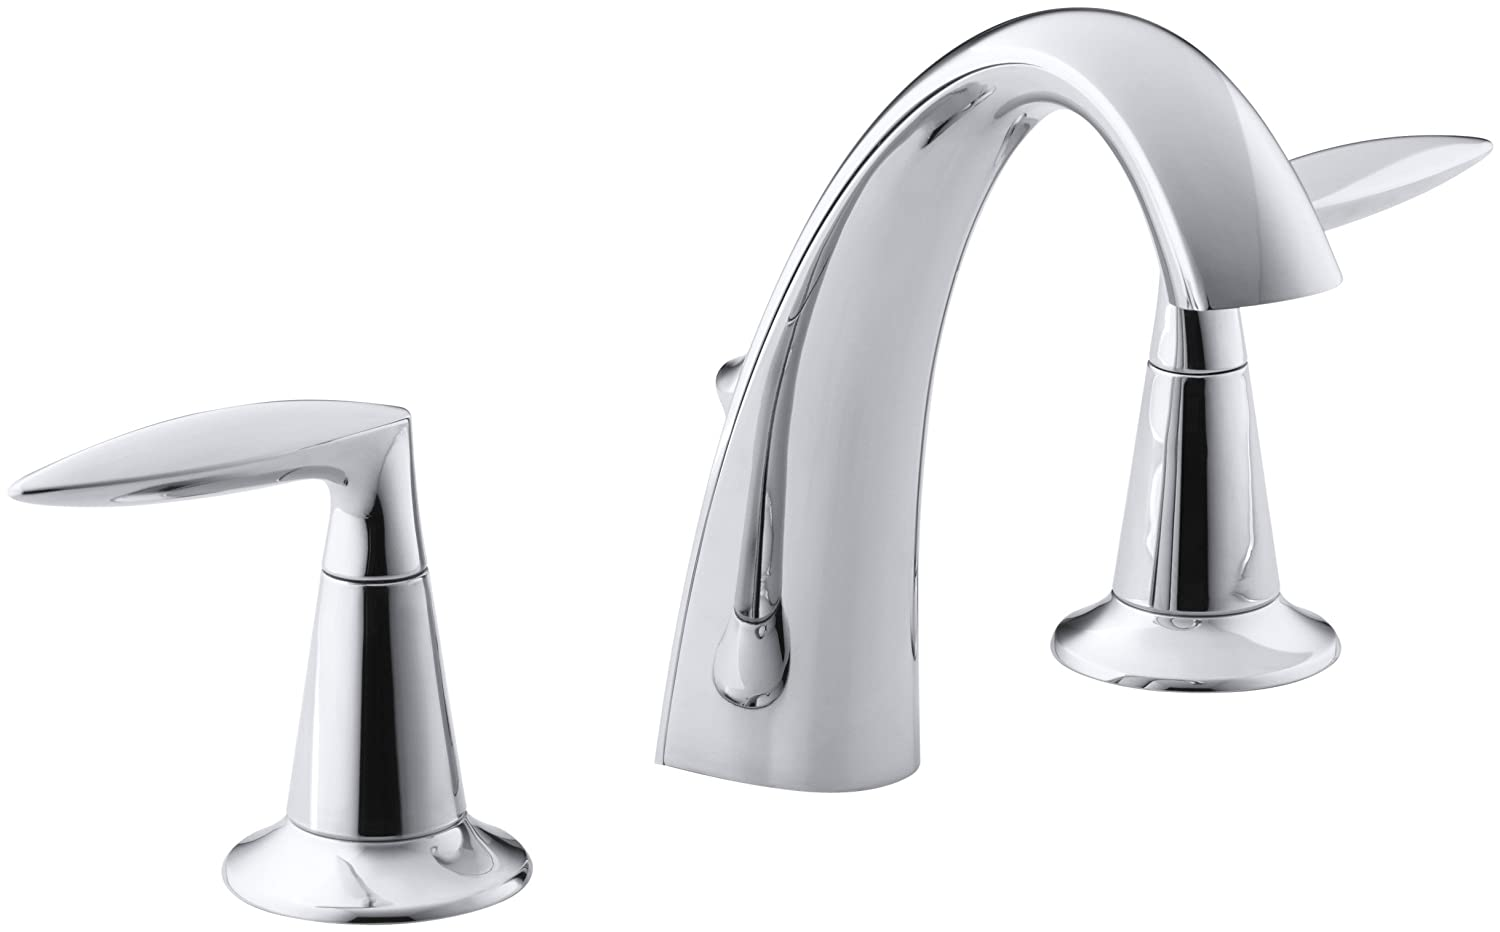 KOHLER K 45102 4 CP Alteo Widespread Lavatory Faucet, Polished Chrome    Touch On Bathroom Sink Faucets   Amazon.com Part 63